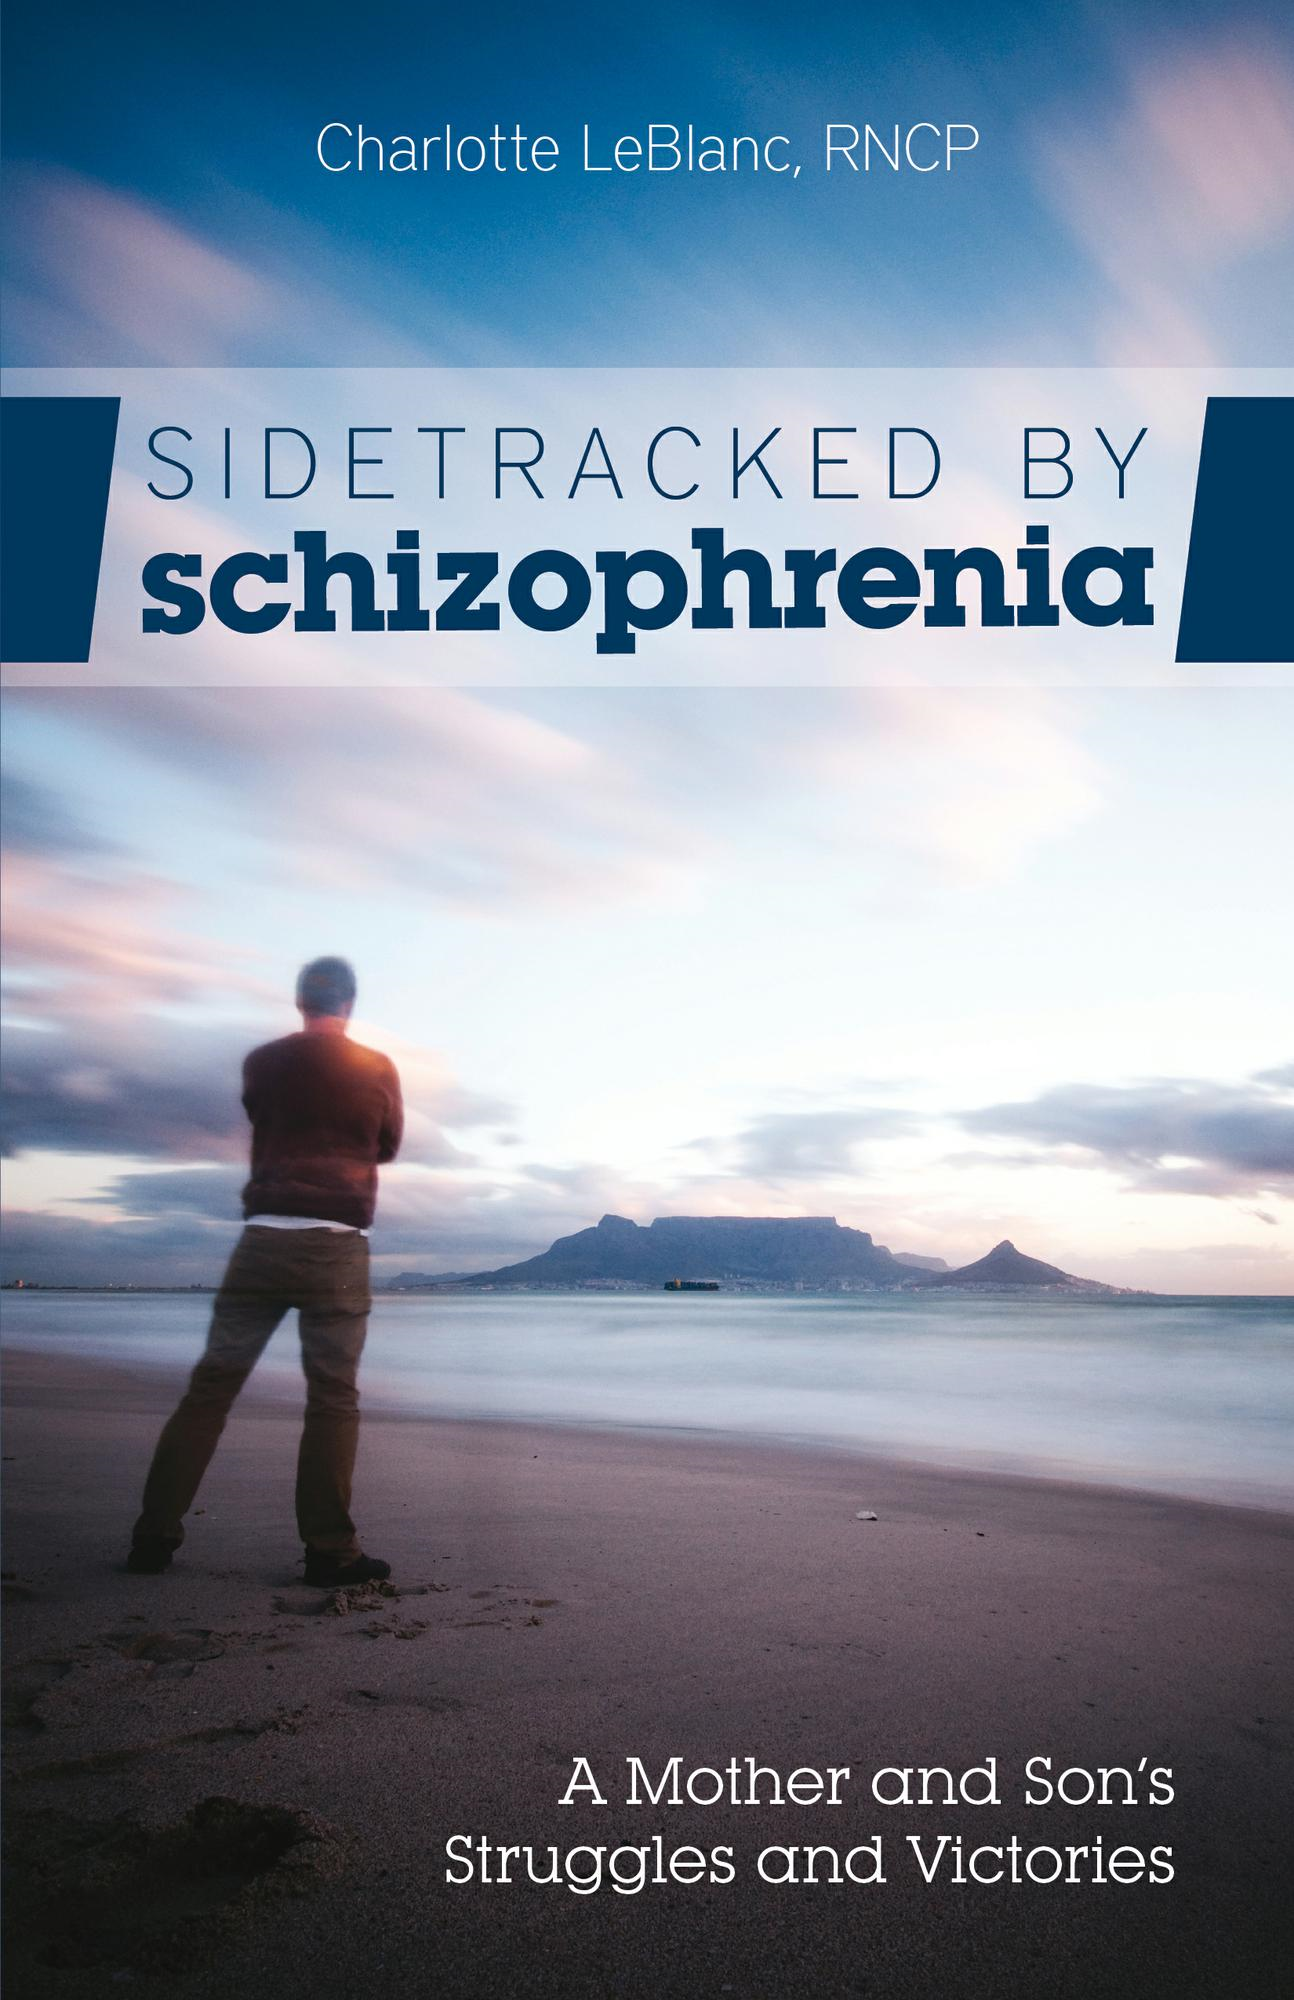 Sidetracked by Schizophrenia: A Mother and Son's Struggles and Victories By: Charlotte LeBlanc